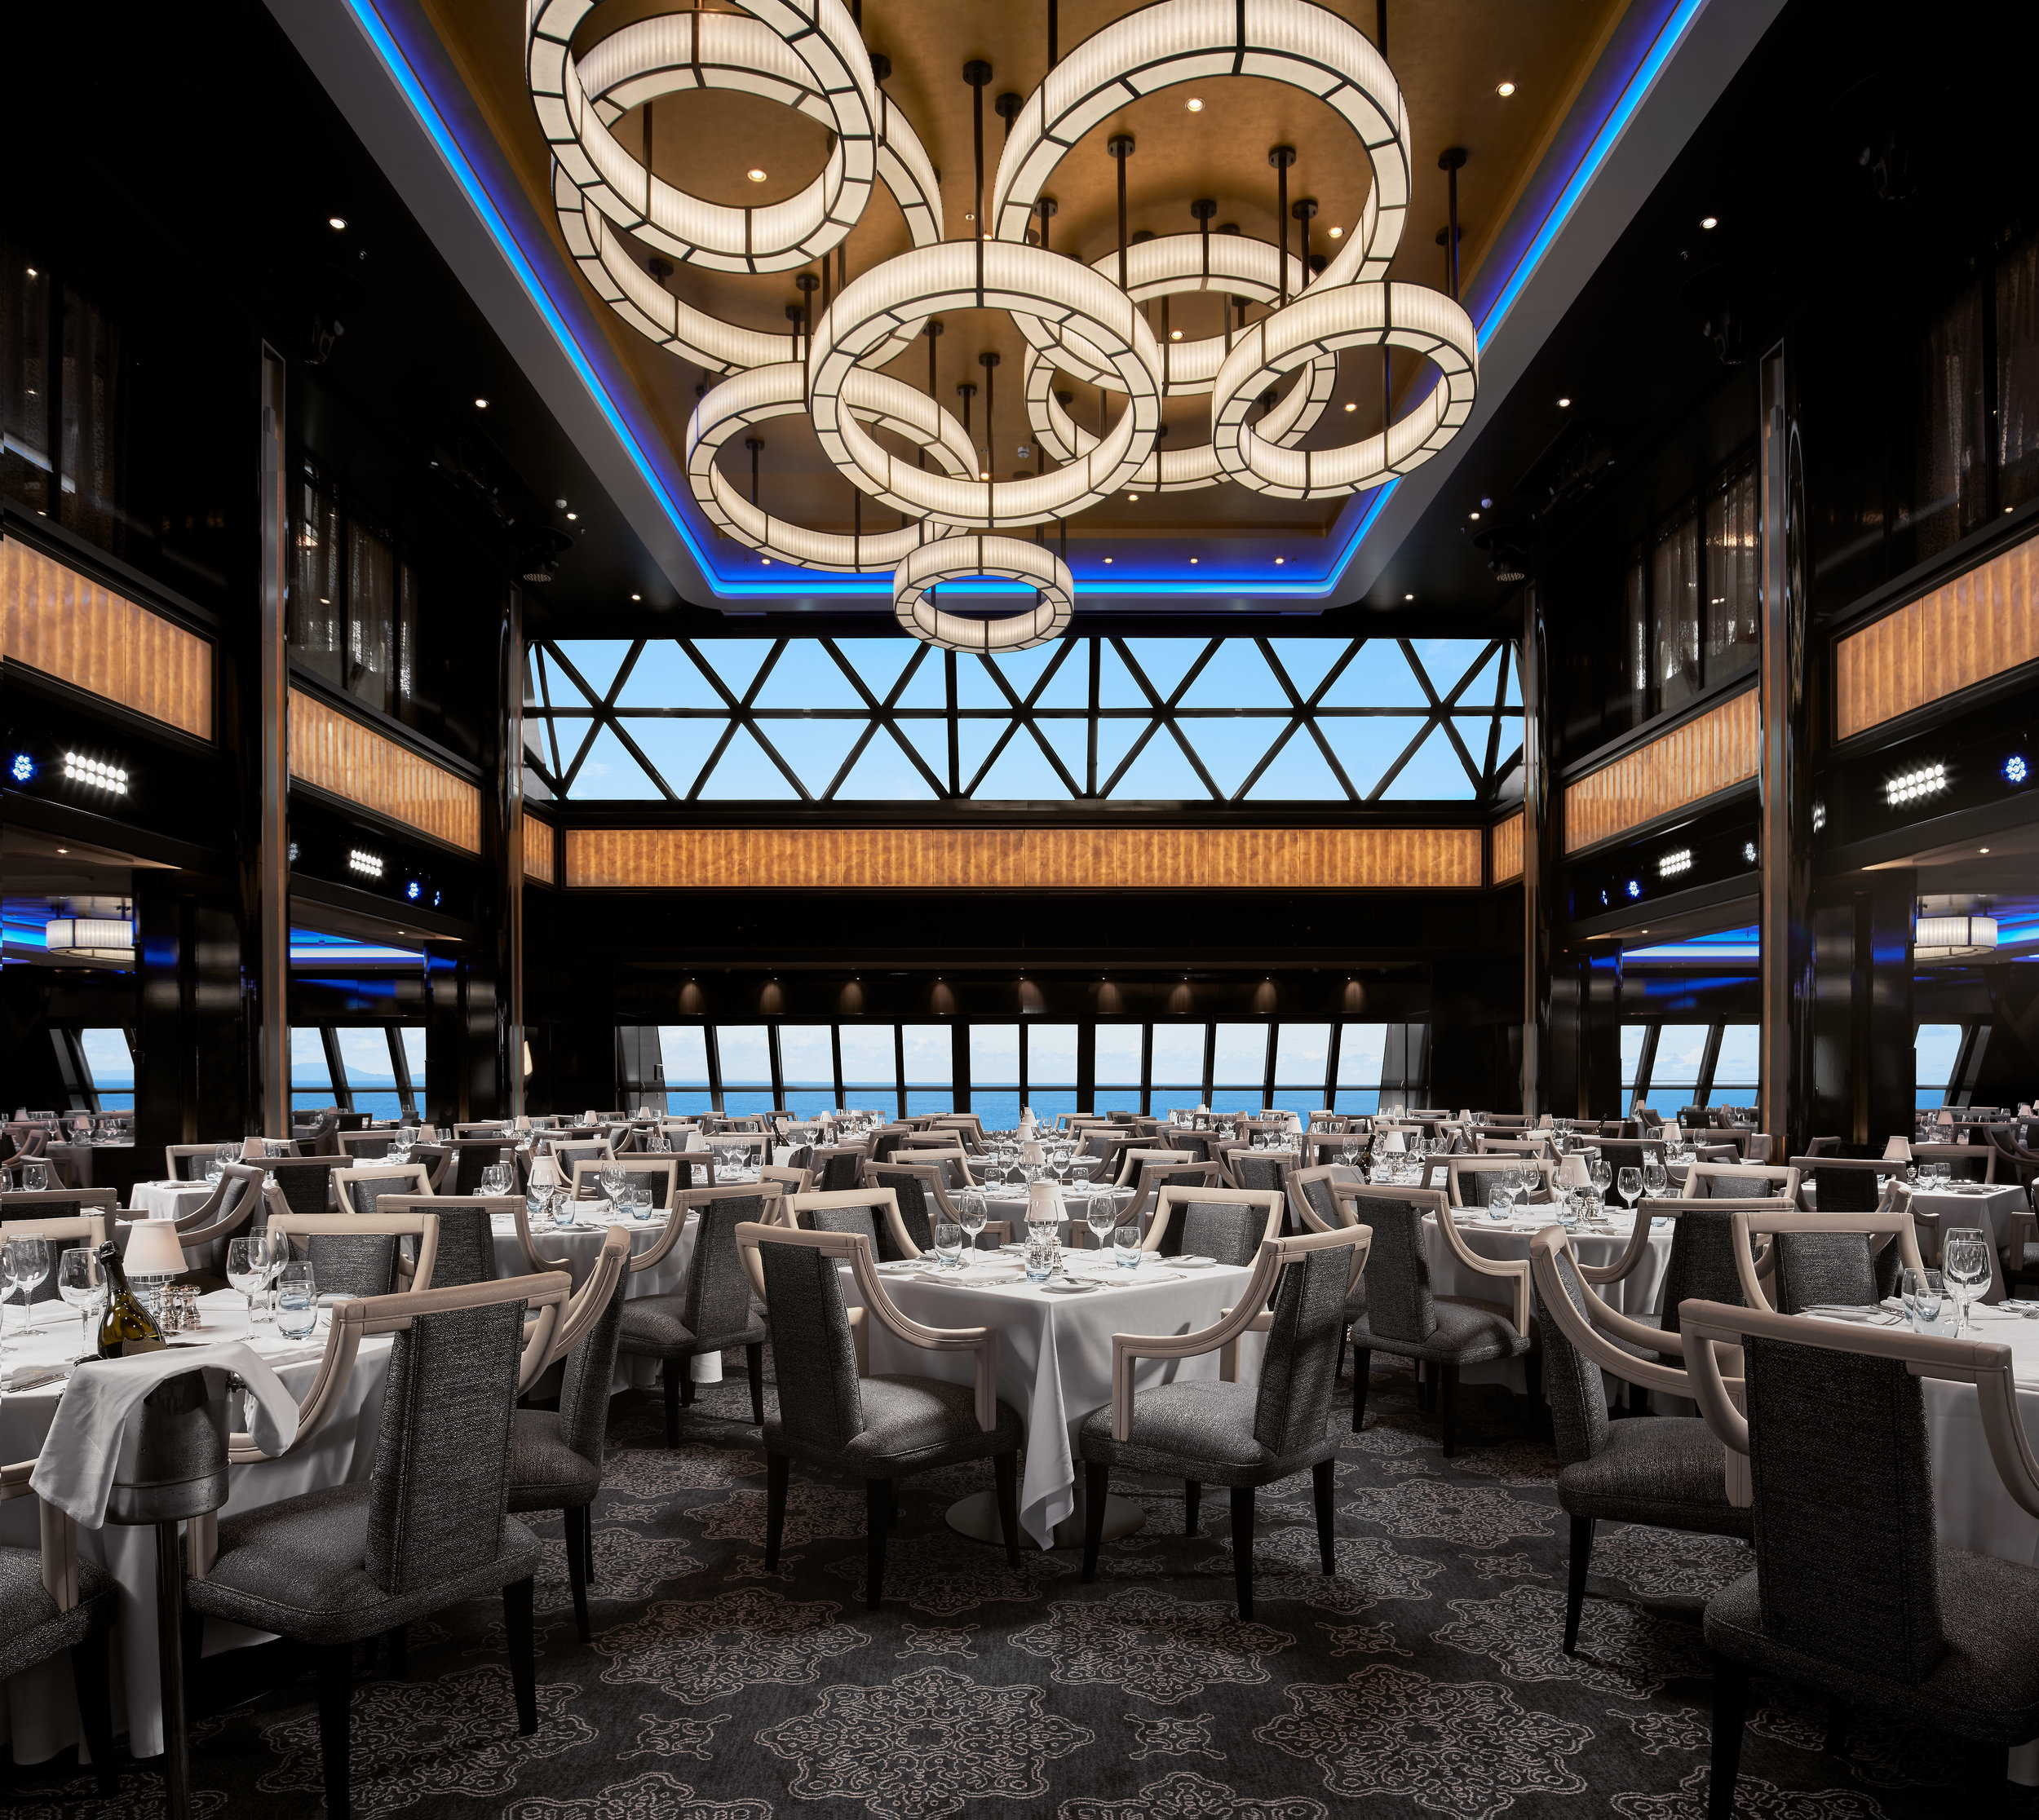 """The Manhattan Dining Room on the Norwegian Bliss. This was one of the larger files of the bunch as it required all of these tables to be lit individually, and stitching the light fixture from a different plate captured with my tilt-shift lens. The ship was also docked in port while we took this shot, so the """"view"""" had to be replaced with what it would look like if the ship were at sea."""